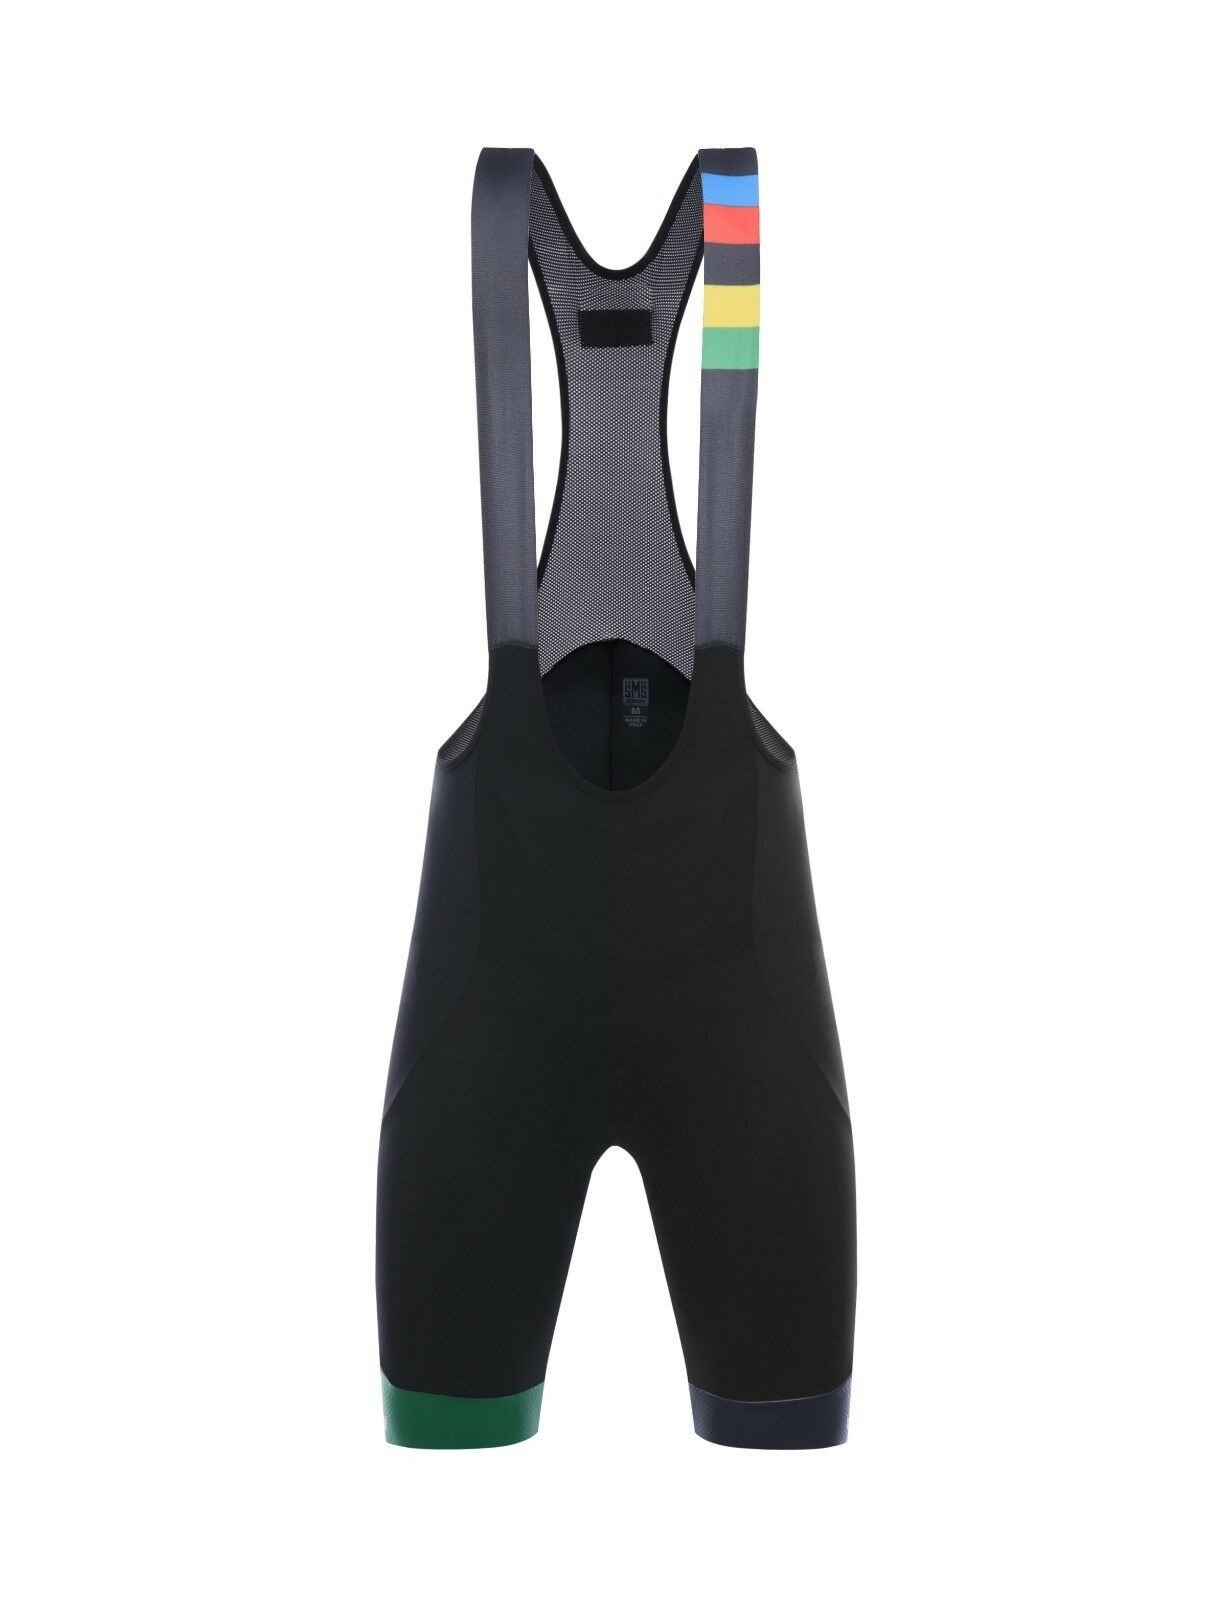 2018 UCI TRIPLE CROWN Radfahren Bib Shorts - Made in  by Santini